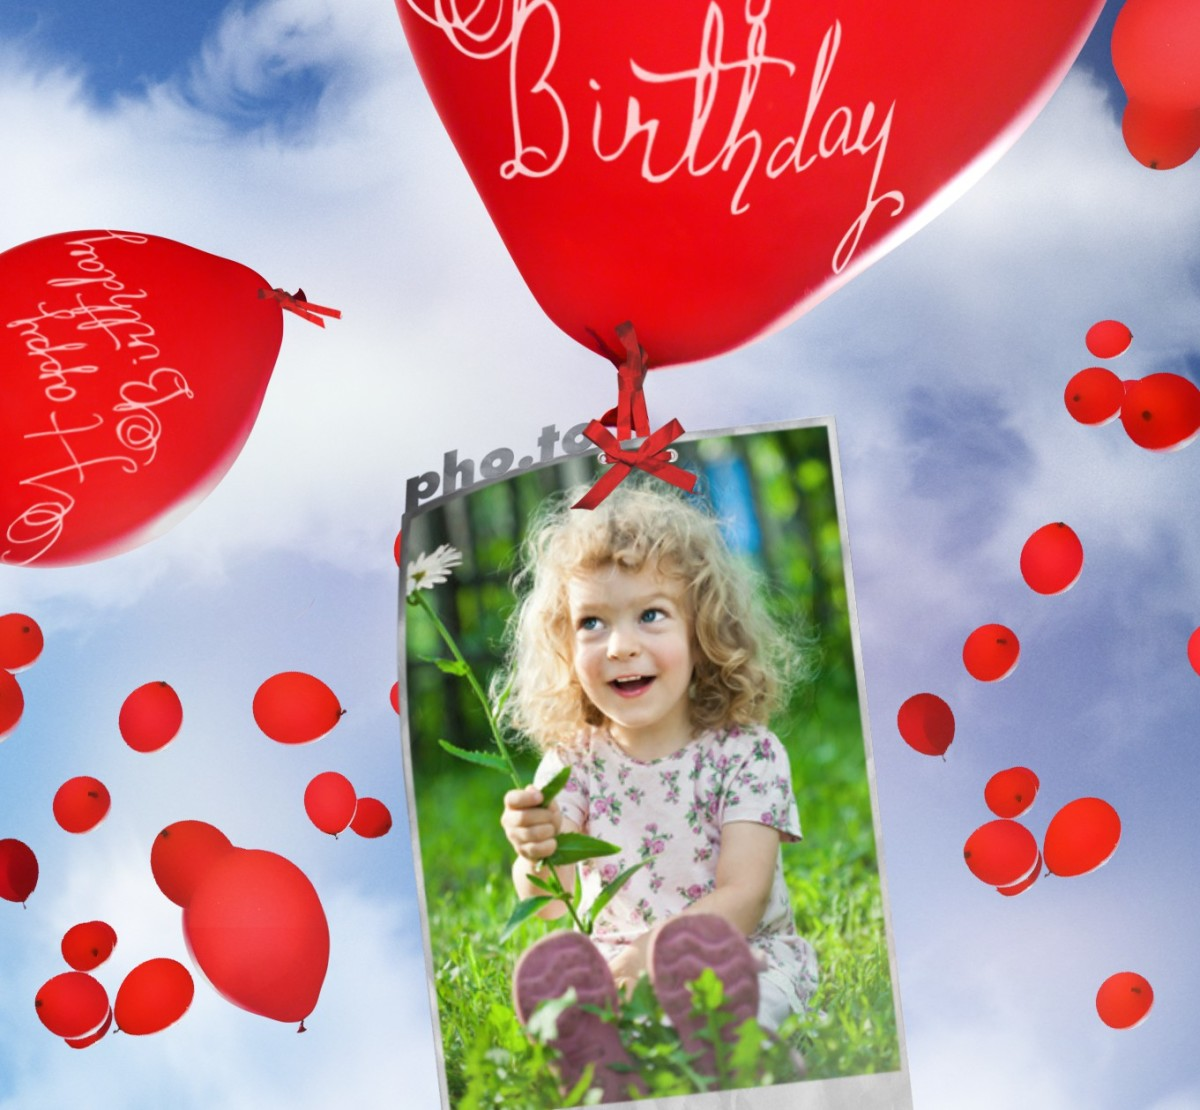 online photo effects for birthday wishes ; birthday_ecard_with_balloons